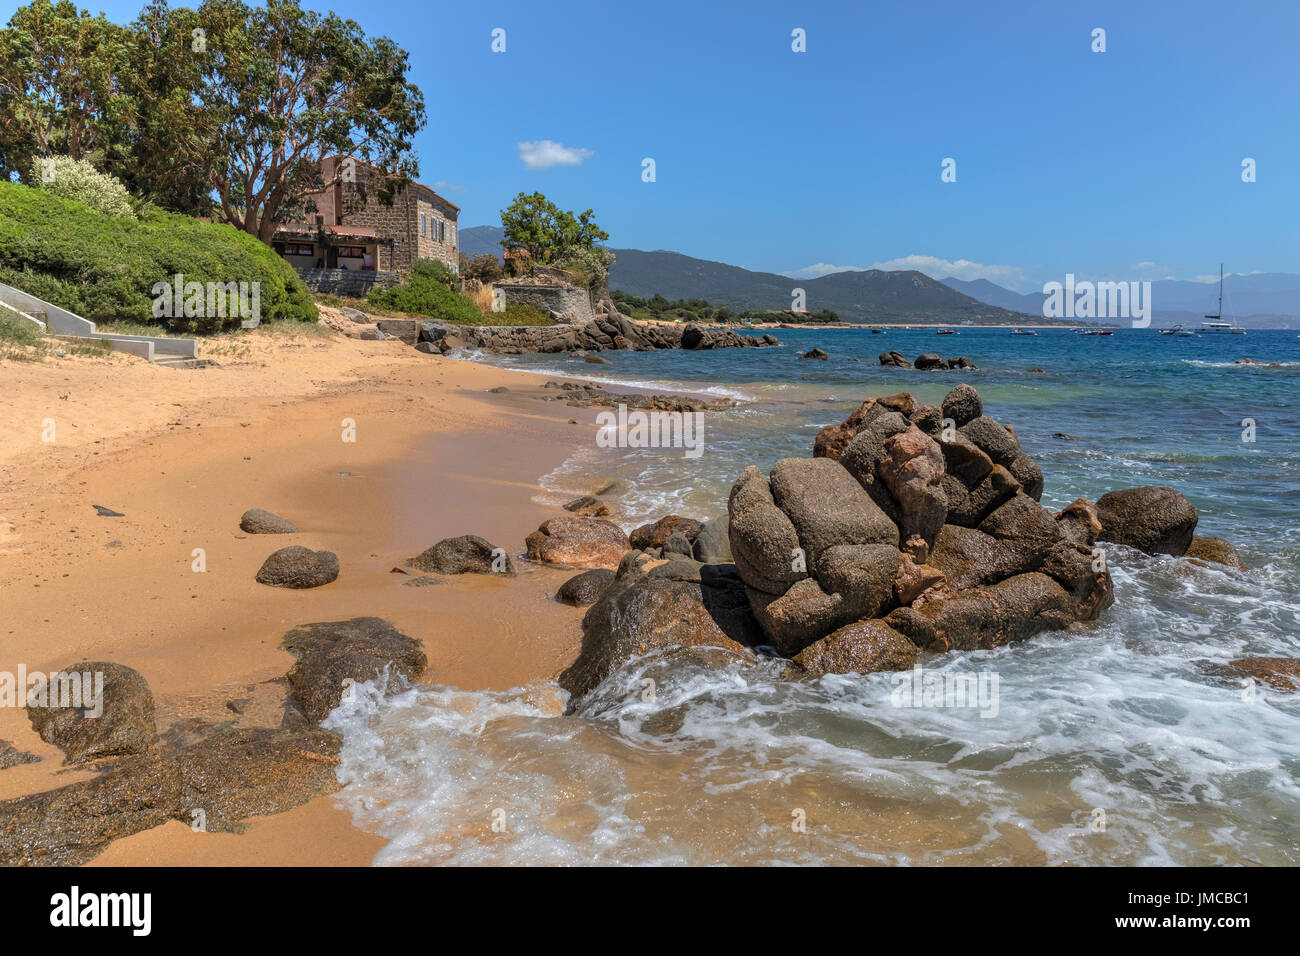 Porto Pollo, Gulf of Valinco, Corsica, France Stock Photo